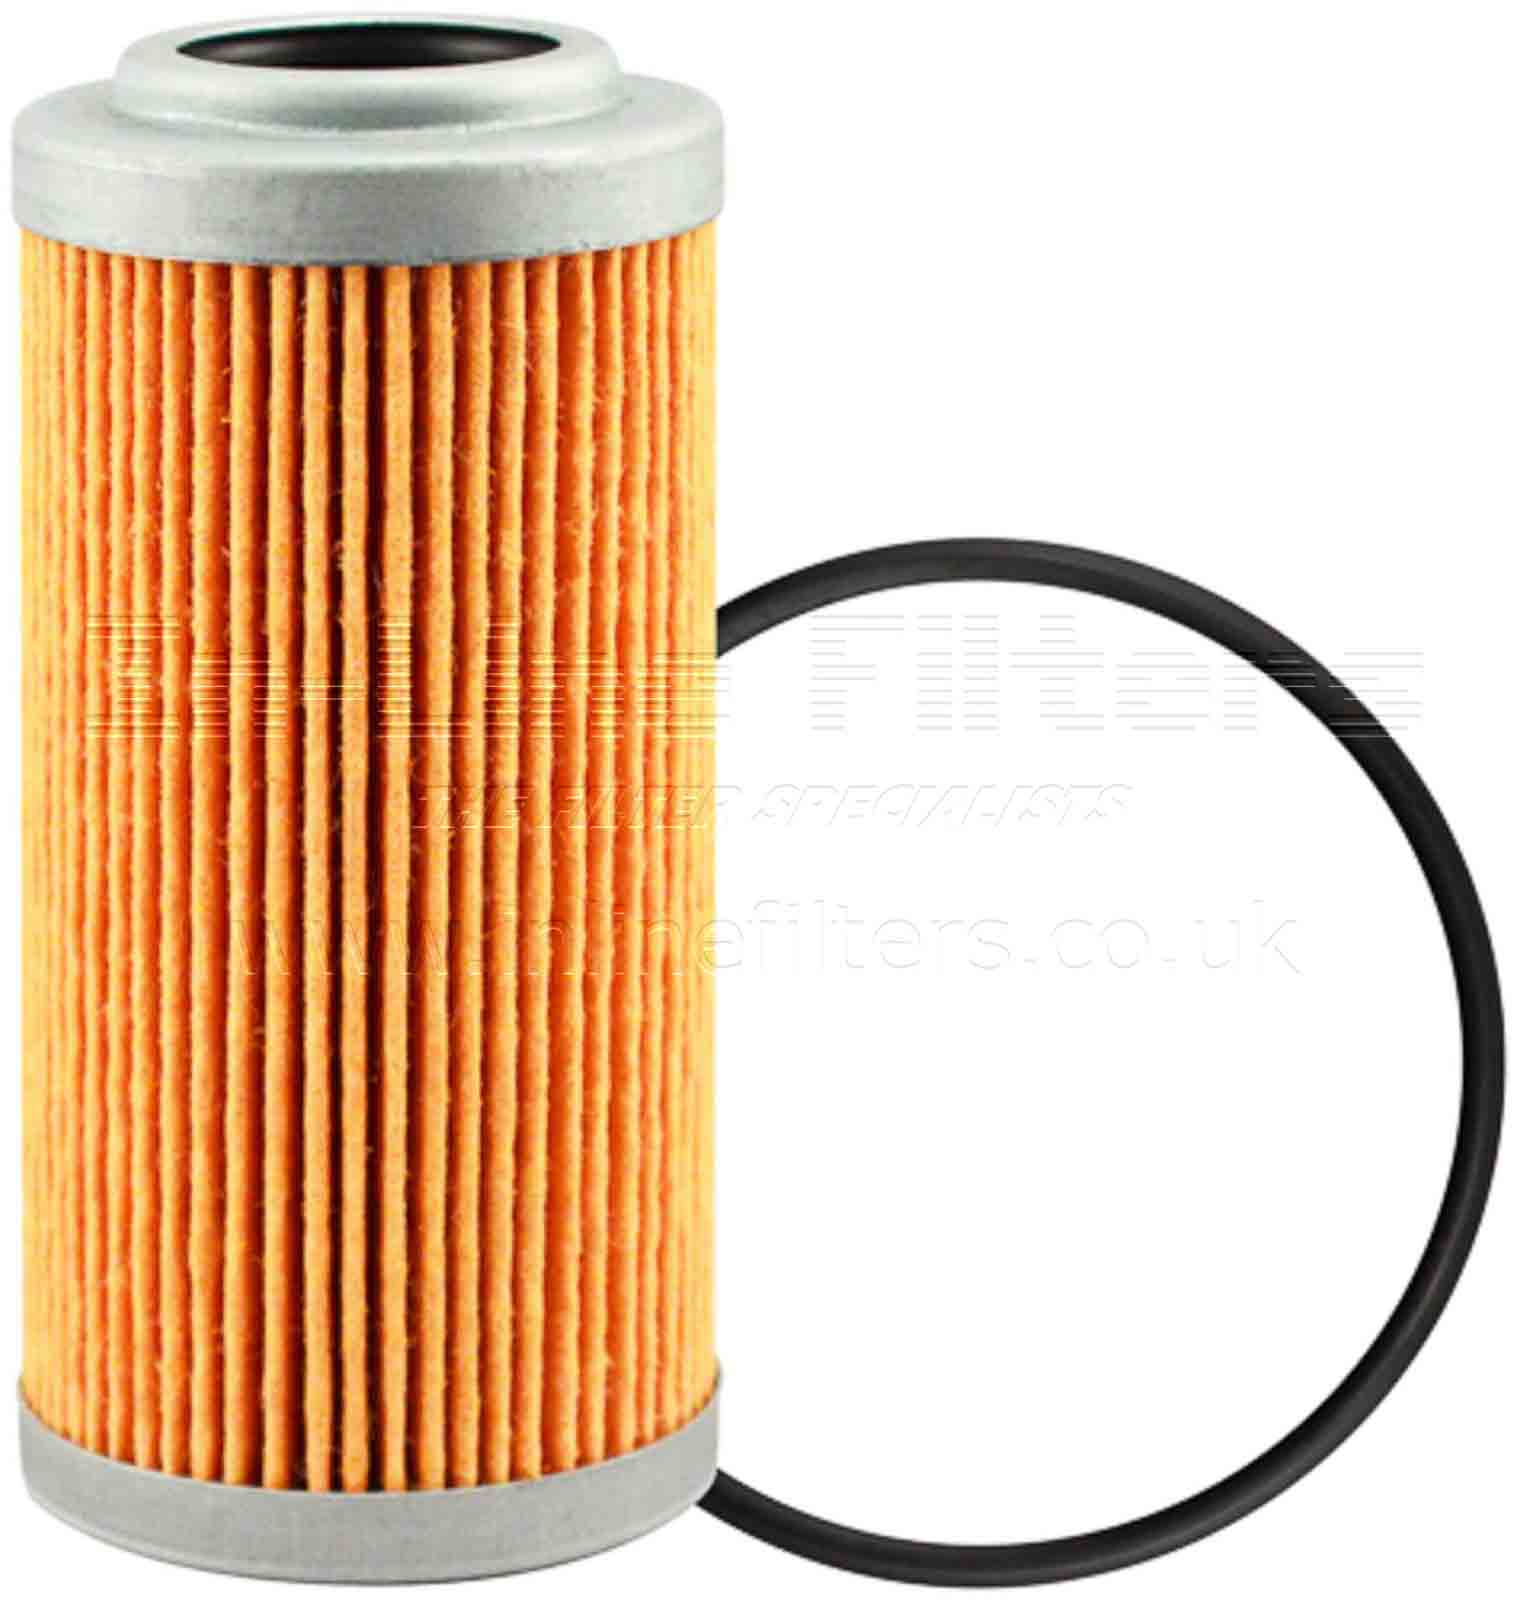 FBW-PT8392 FILTER-Hydraulic(Brand Specific-Baldwin PT8392) - Click Image to Close